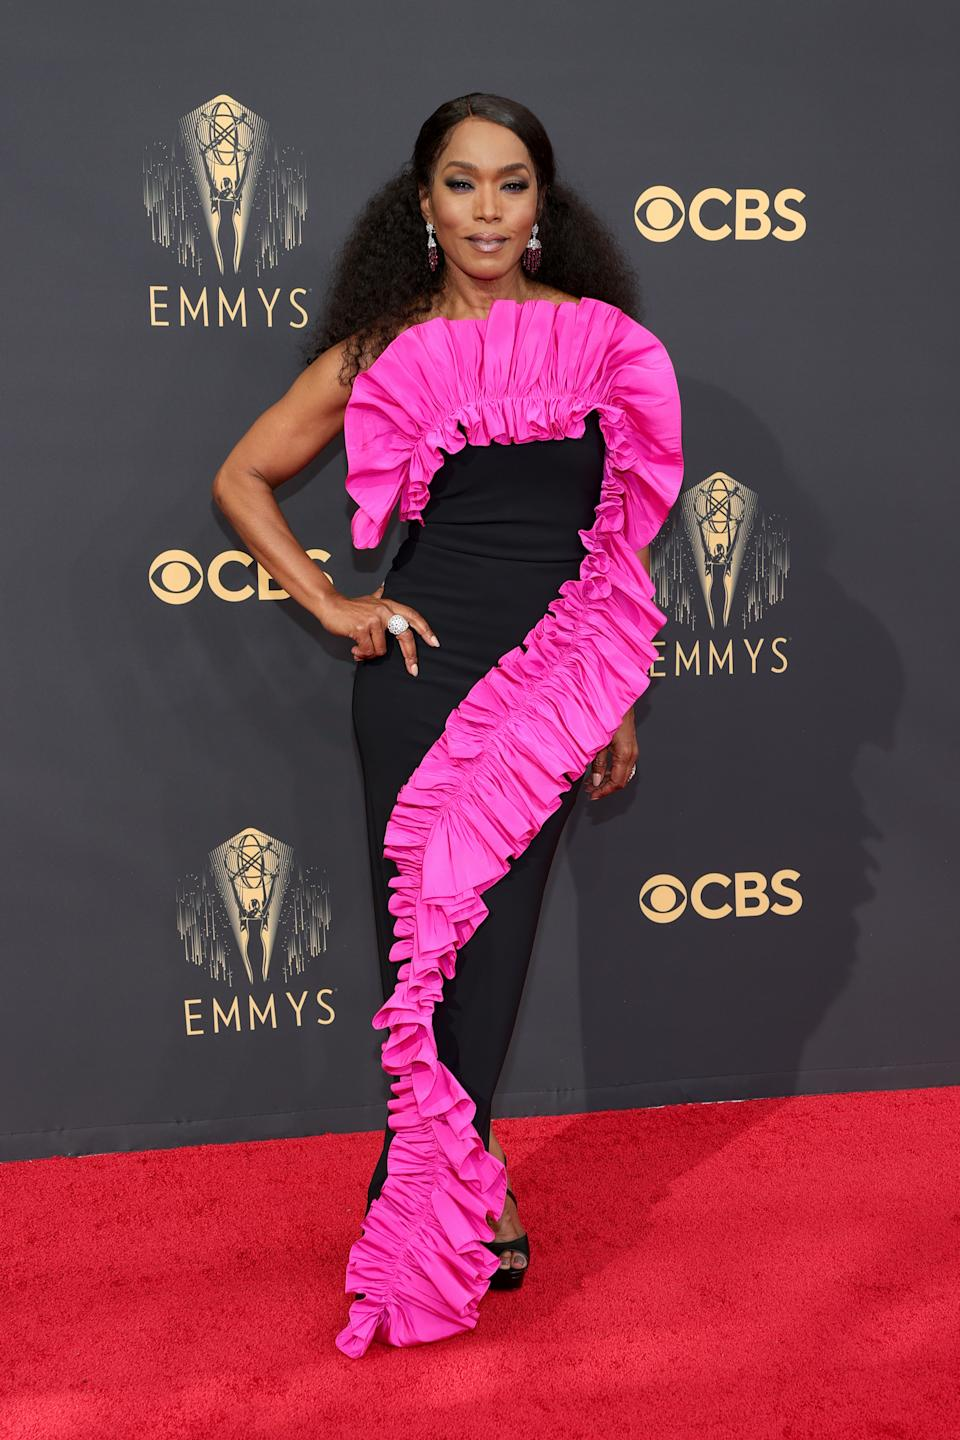 Angela Bassett wears a black strapless column dress with a pink ruffle at the 73rd Primetime Emmy Awards at L.A. LIVE on September 19, 2021 in Los Angeles, California. (Photo by Rich Fury/Getty Images)